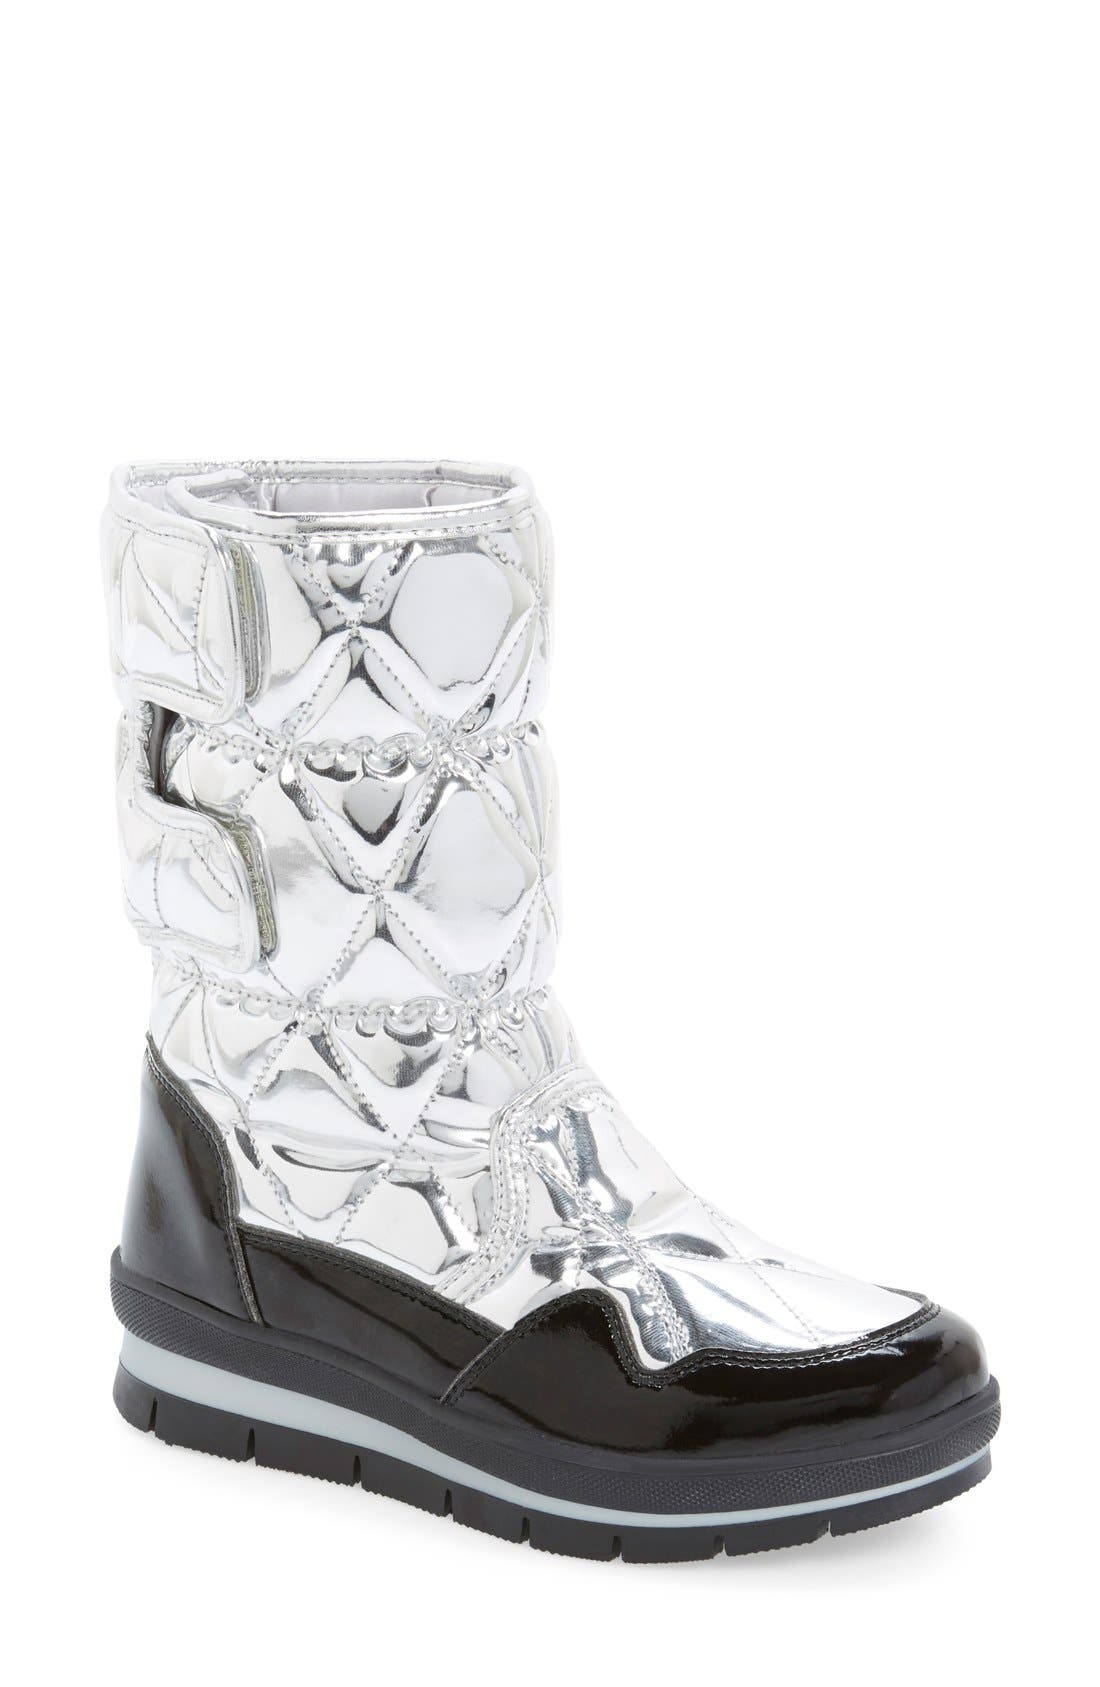 Alternate Image 1 Selected - JOG DOG Waterproof Quilted Boot (Women)